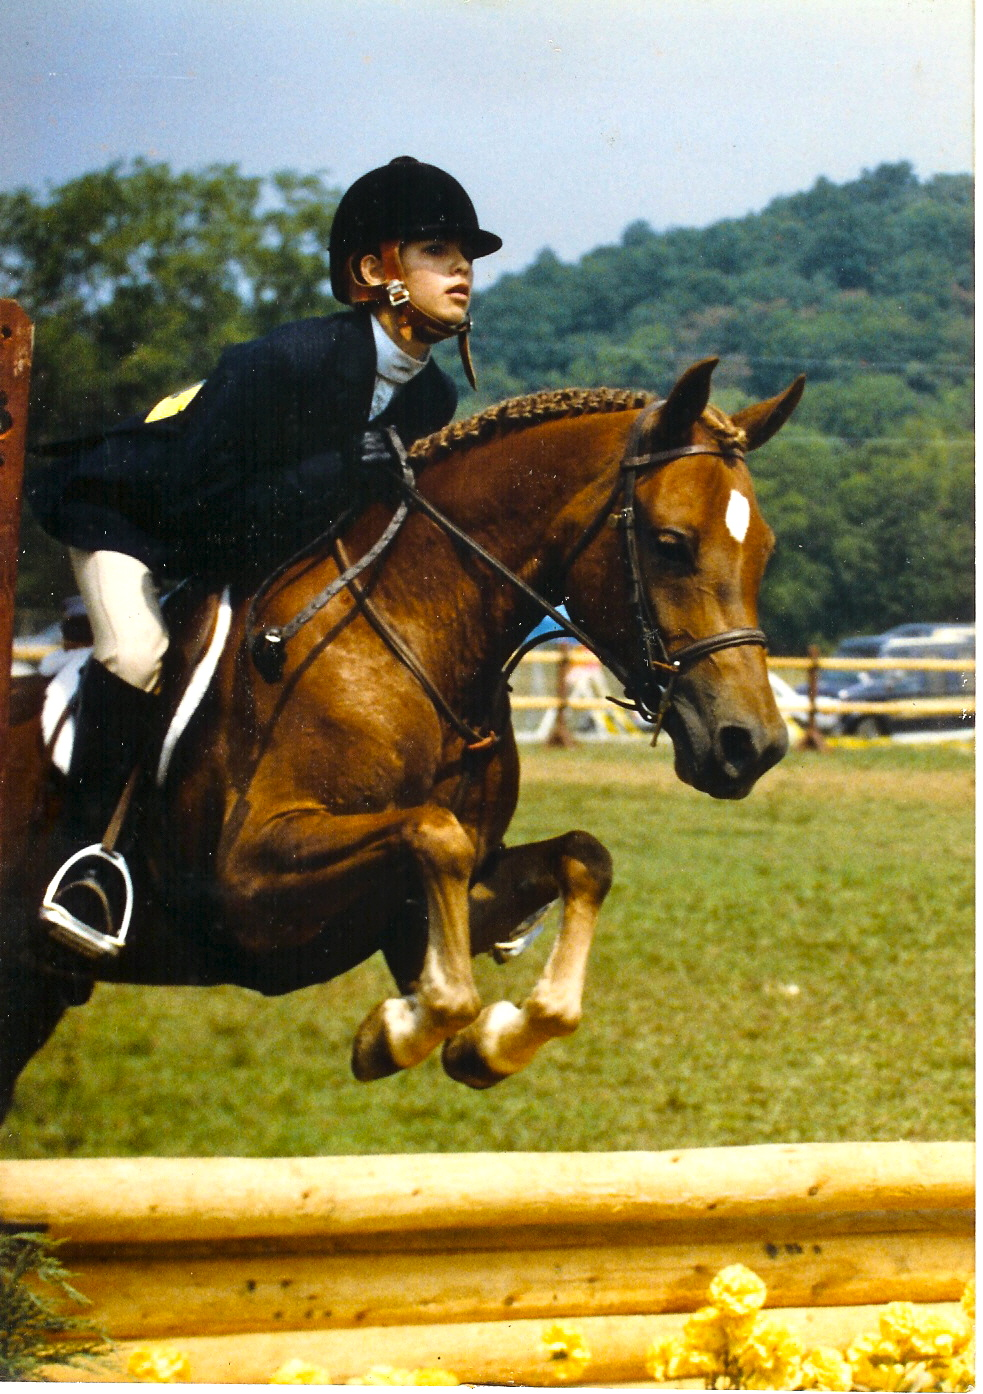 Fiesta Fanfare & Chanda Epple (Pressley) in 1986